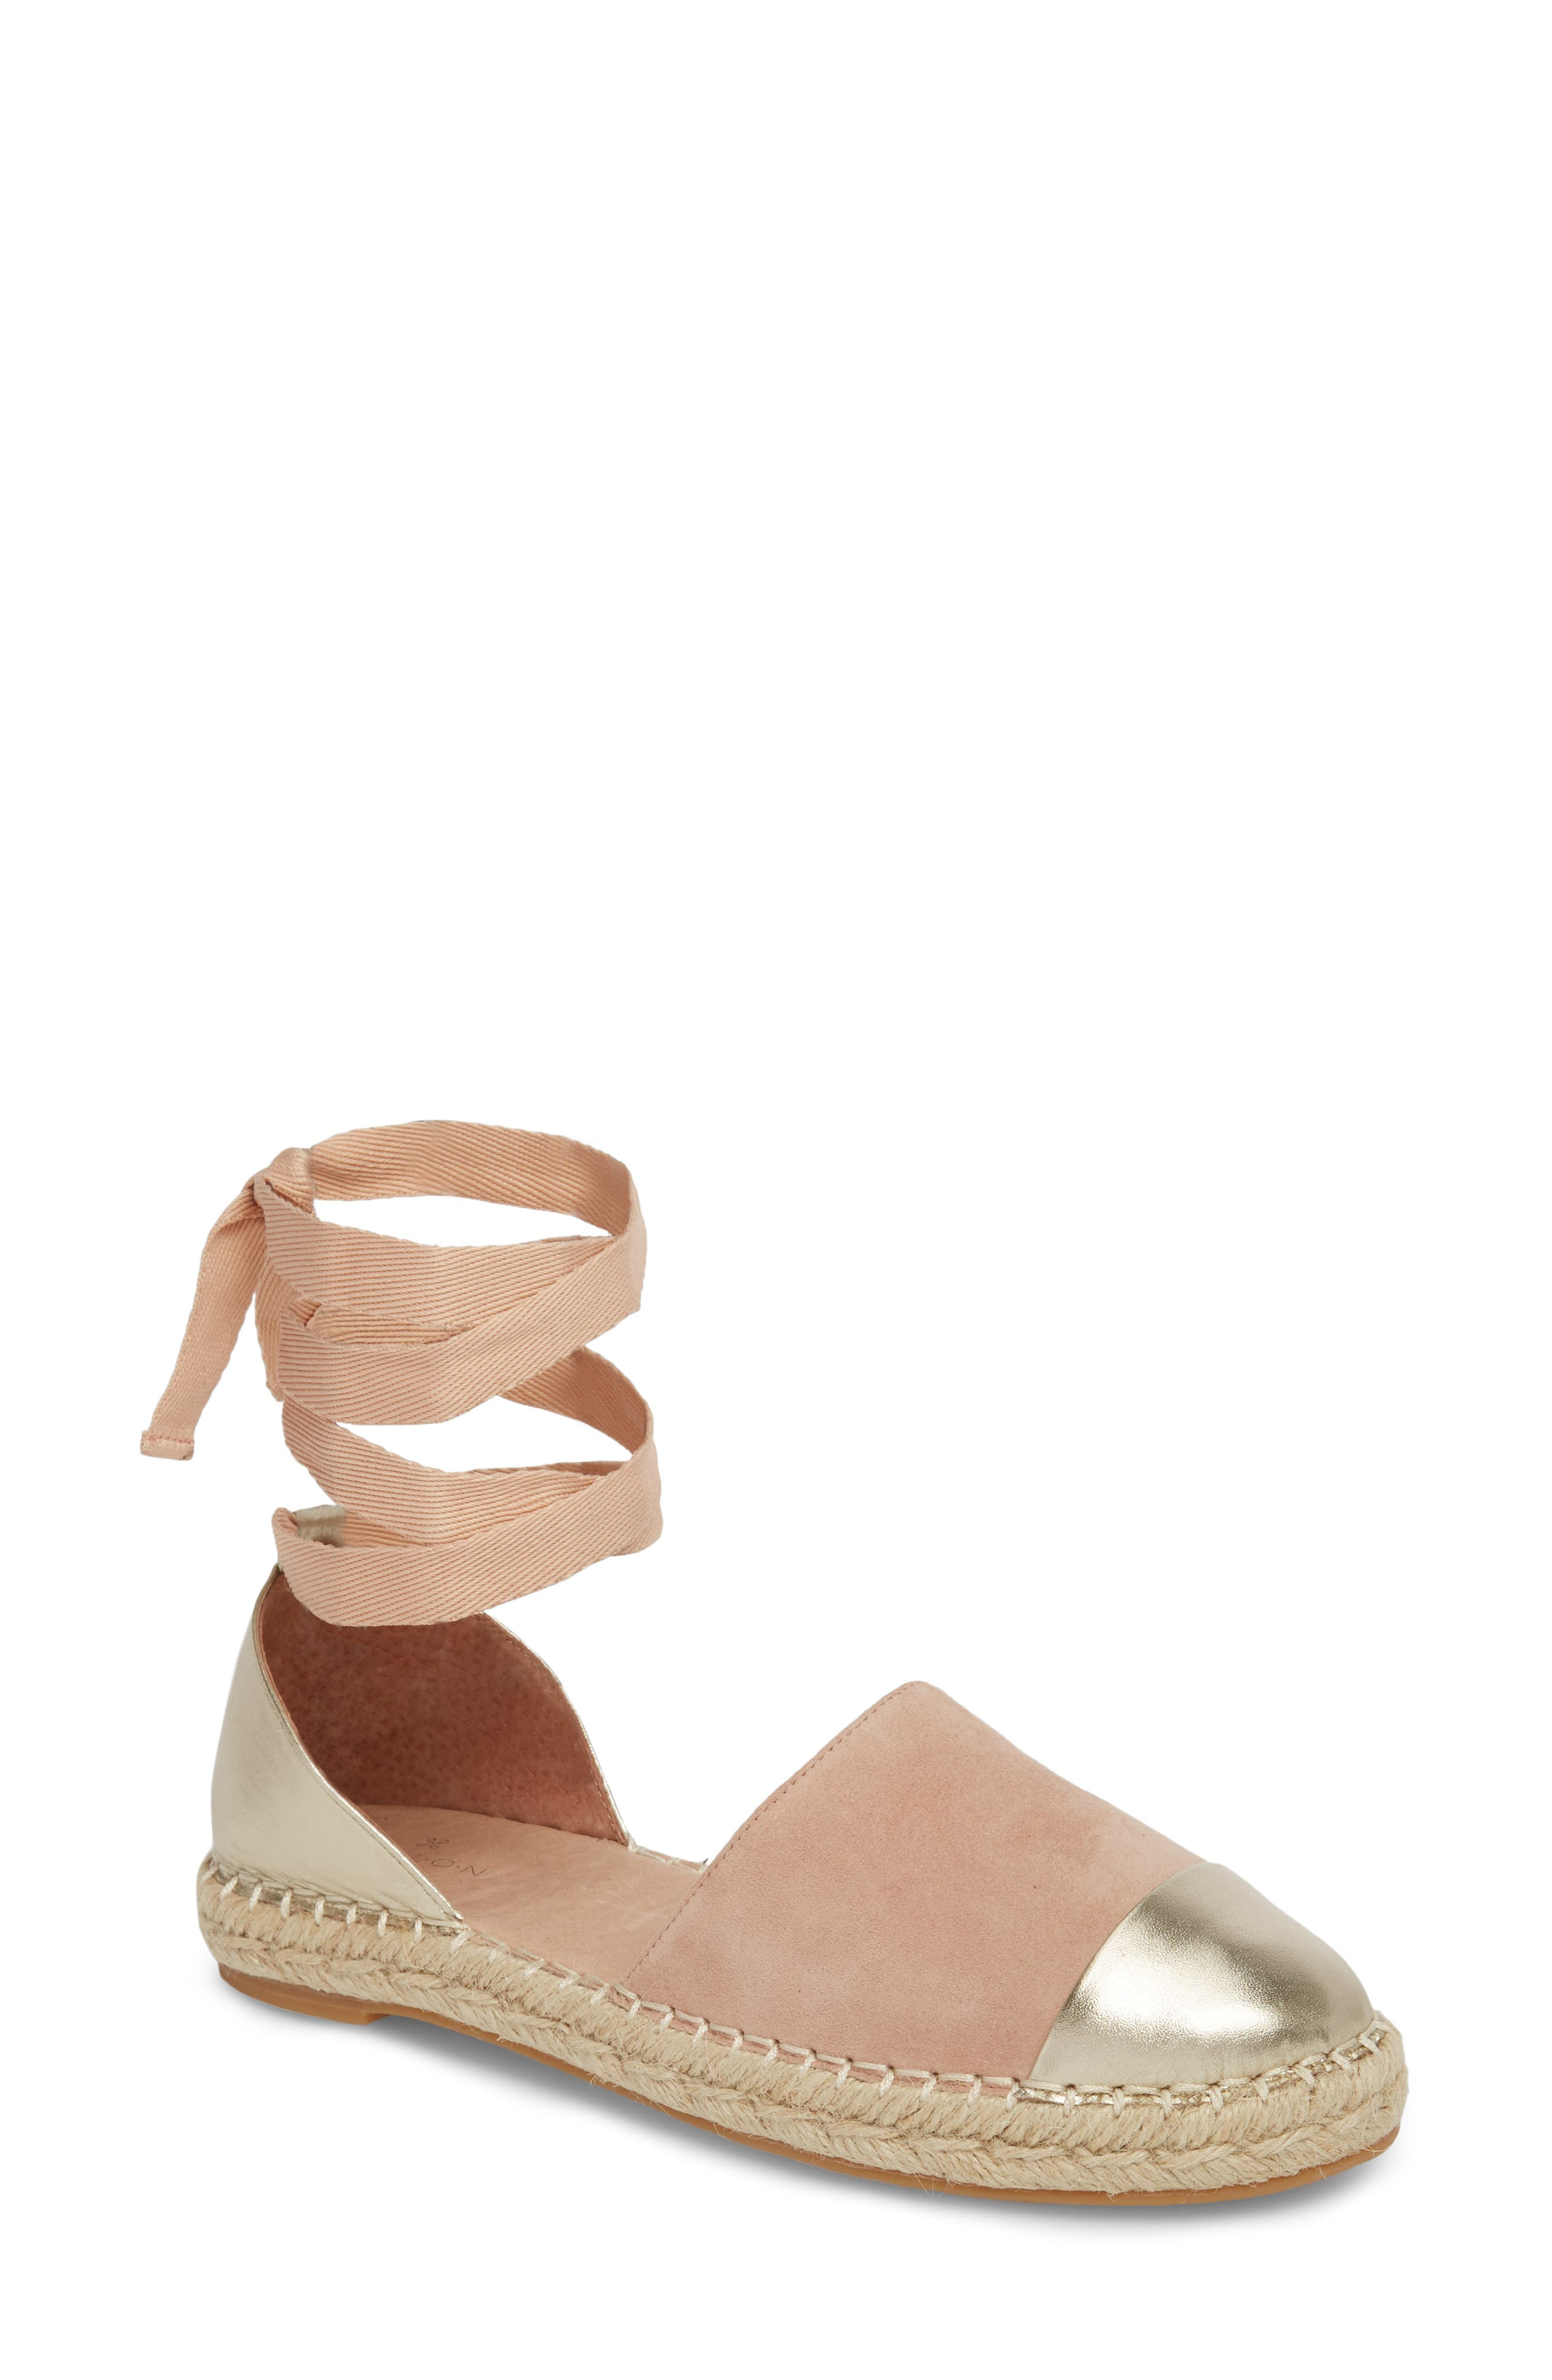 Cain Ankle-Tie Sandal,                             Main thumbnail 1, color,                             260